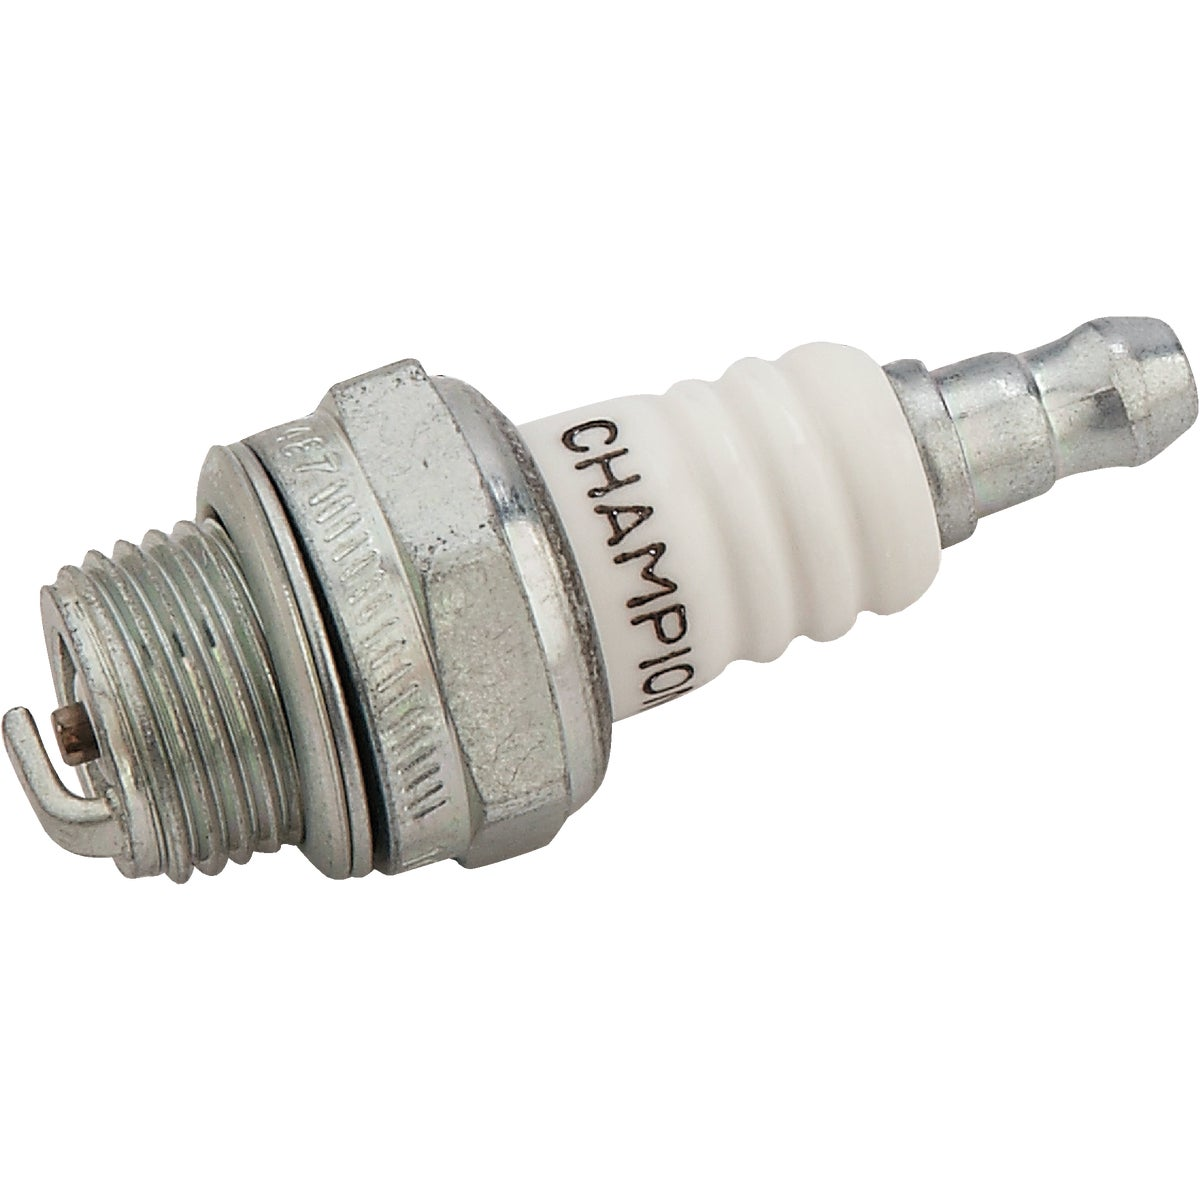 CJ6 CHAINSAW PLUG